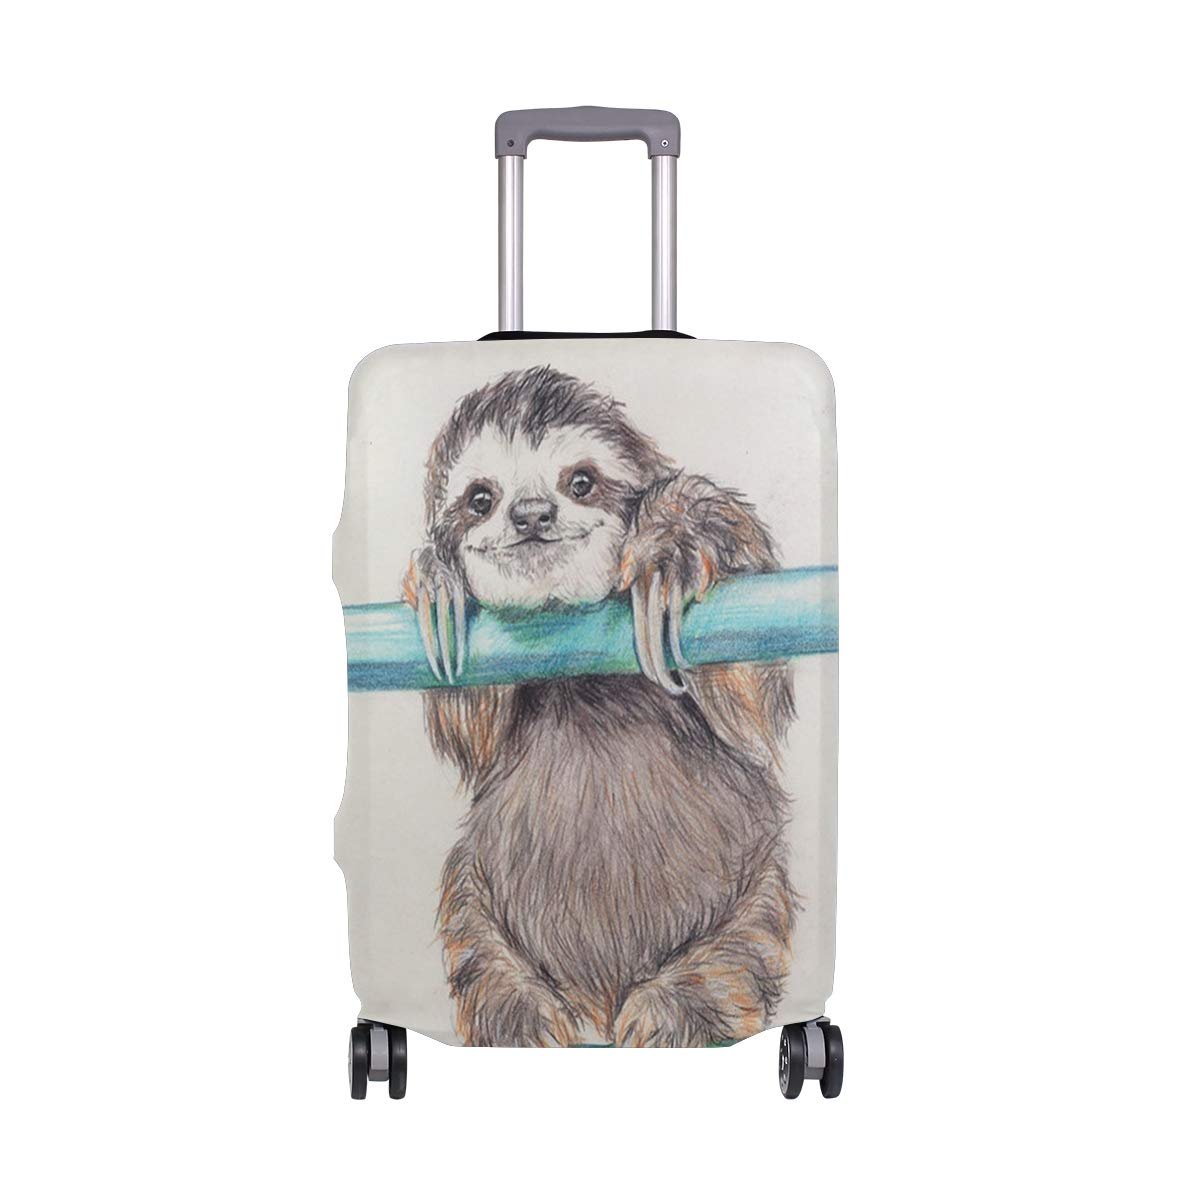 Happiest Sloth Luggage Covers Suitcase Protector Jacket Dust-proof Anti-thief Dust-proof Case Fits 18-32 Inch Luggage